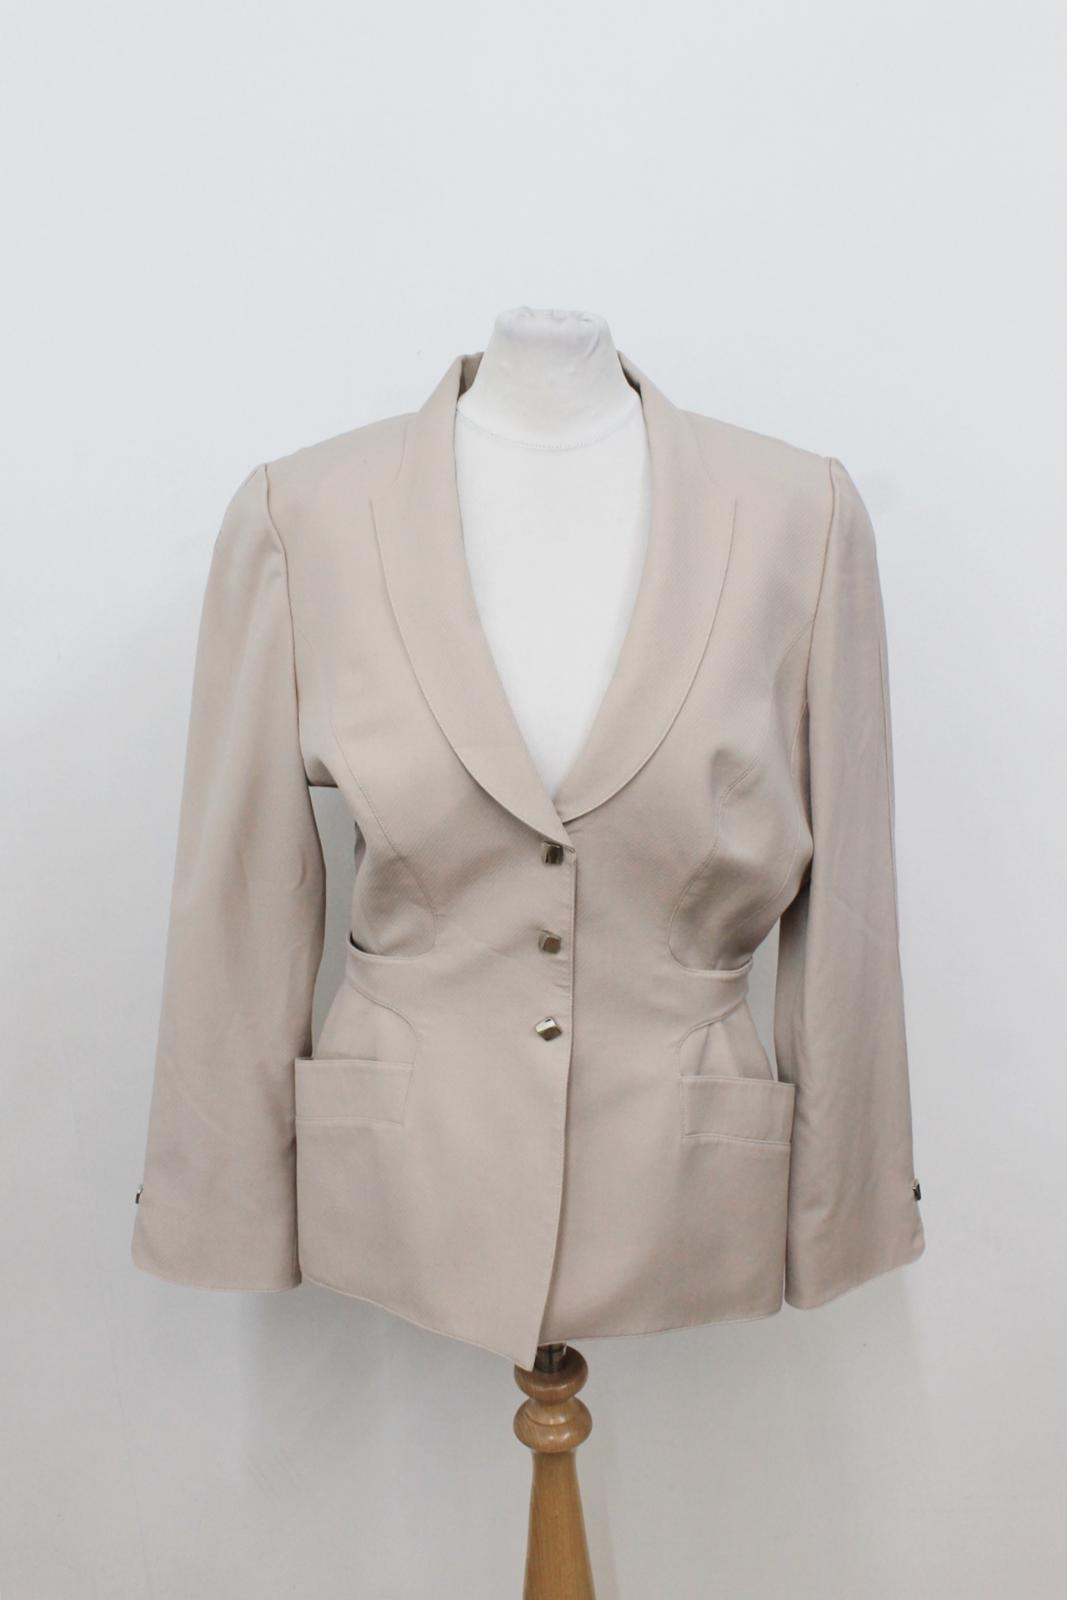 Beige Ladies Breasted Single Light Eu40 Jacket Wool Mugler Thierry Uk12 Suit wHxqZta5